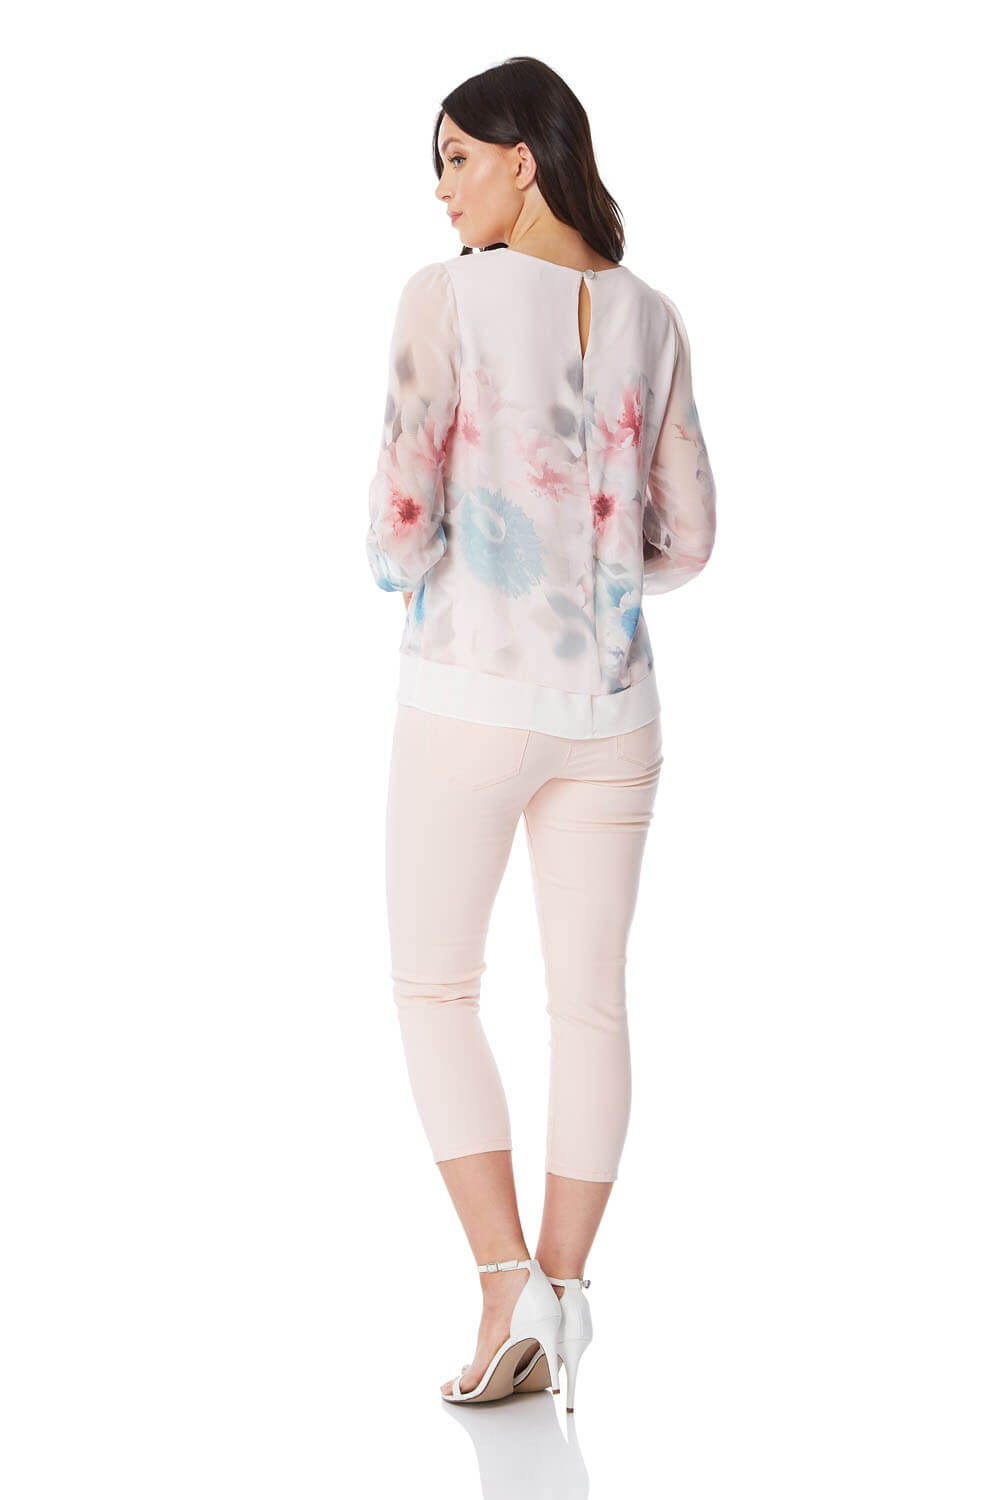 Roman-Originals-Womens-3-4-Length-Sleeve-Floral-Overlay-Top thumbnail 12